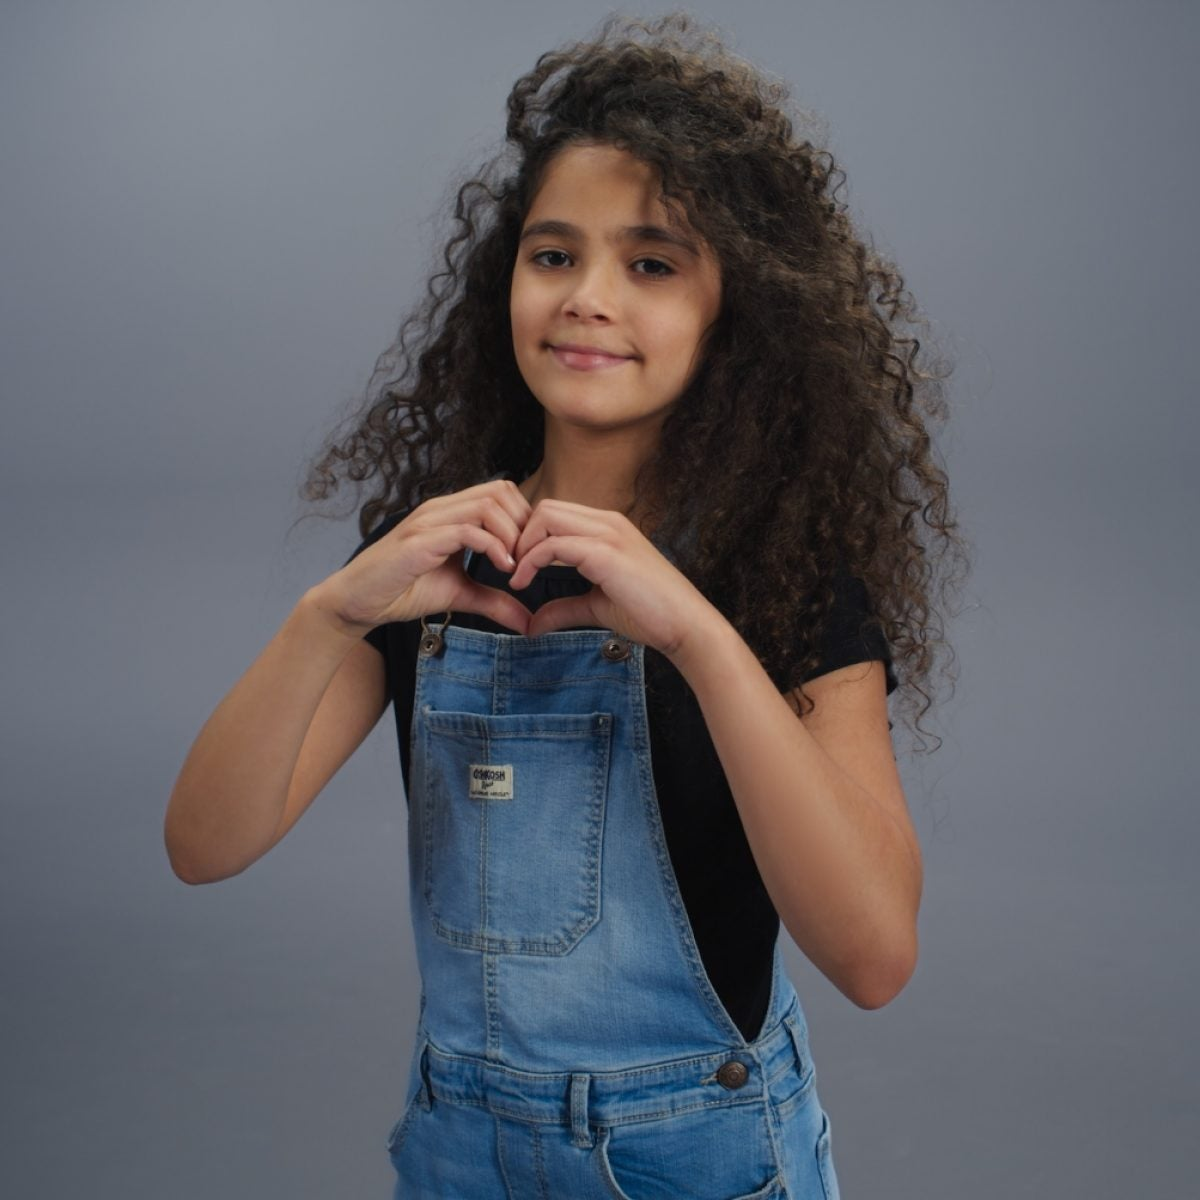 Mariah Carey's Daughter Pays Homage To Her Mom In OshKosh B'Gosh Campaign